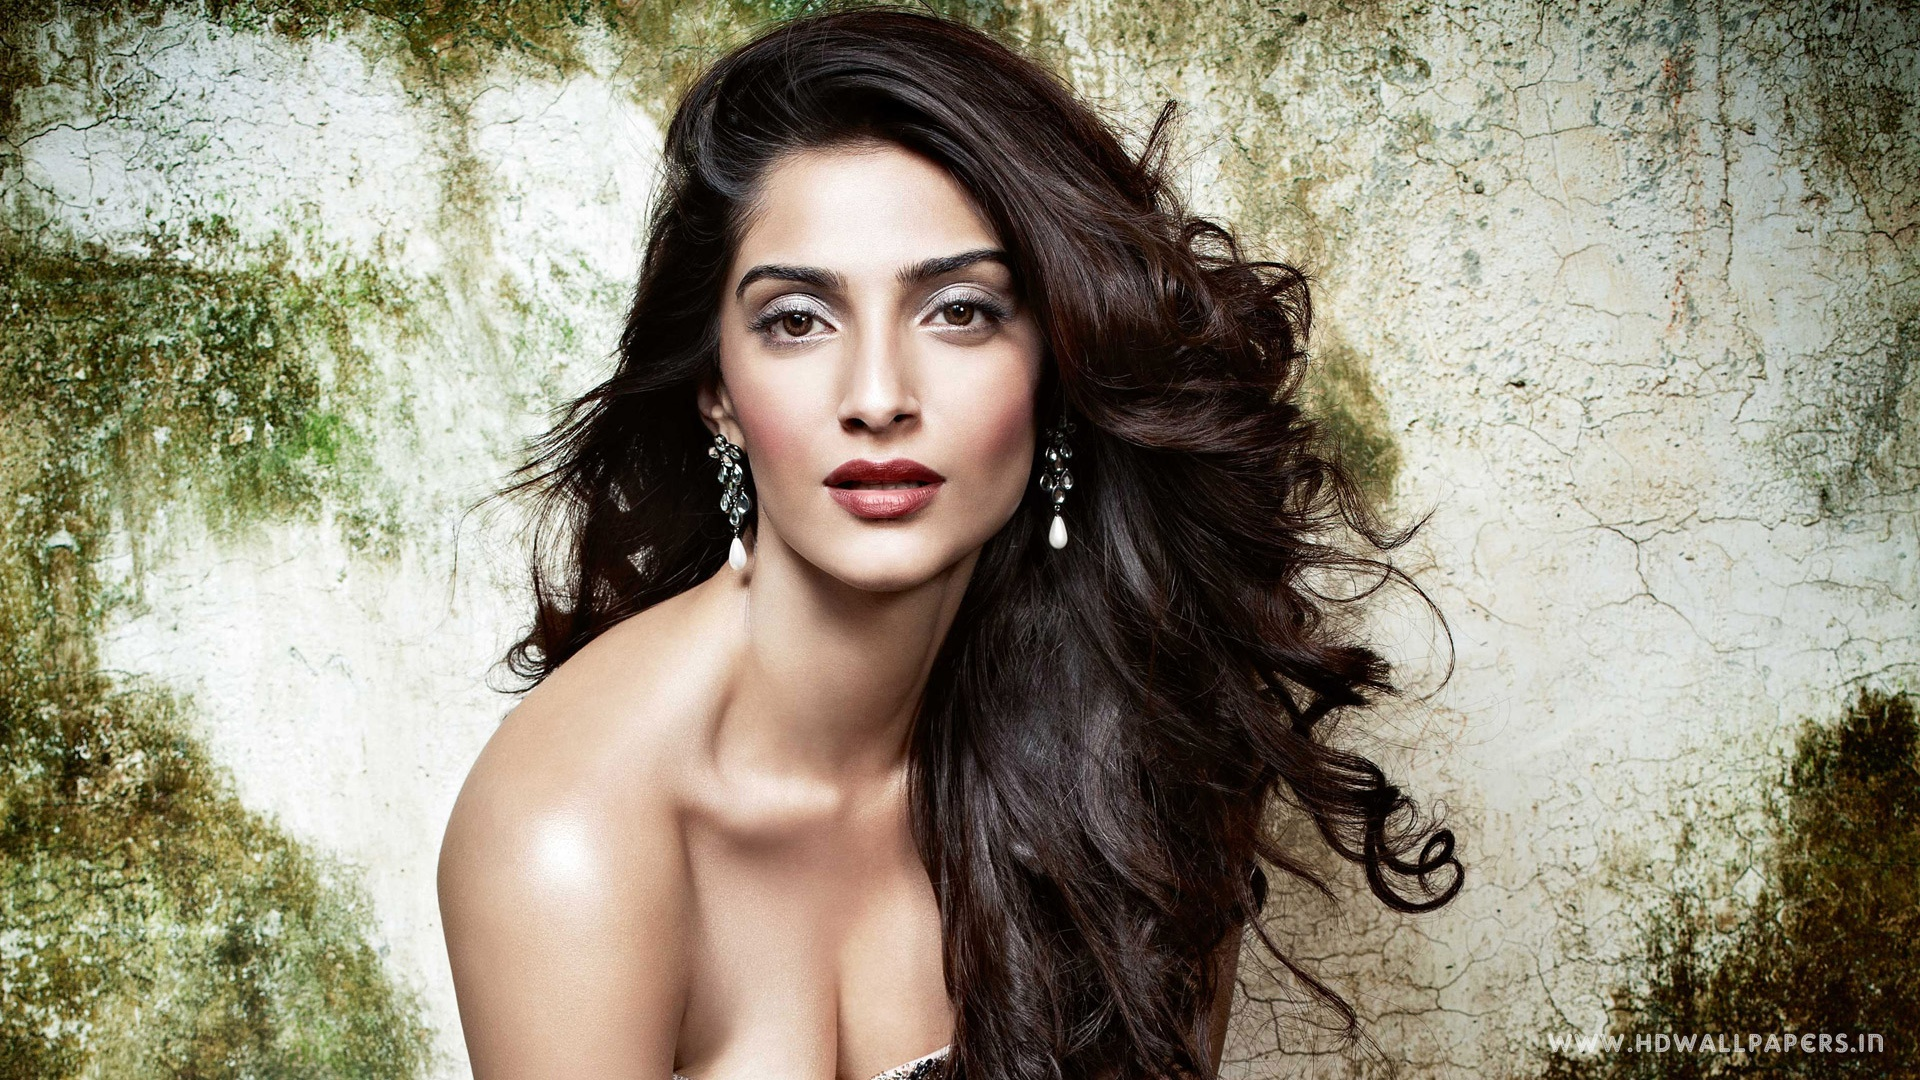 bollywood actress sonam kapoor wallpapers in jpg format for free